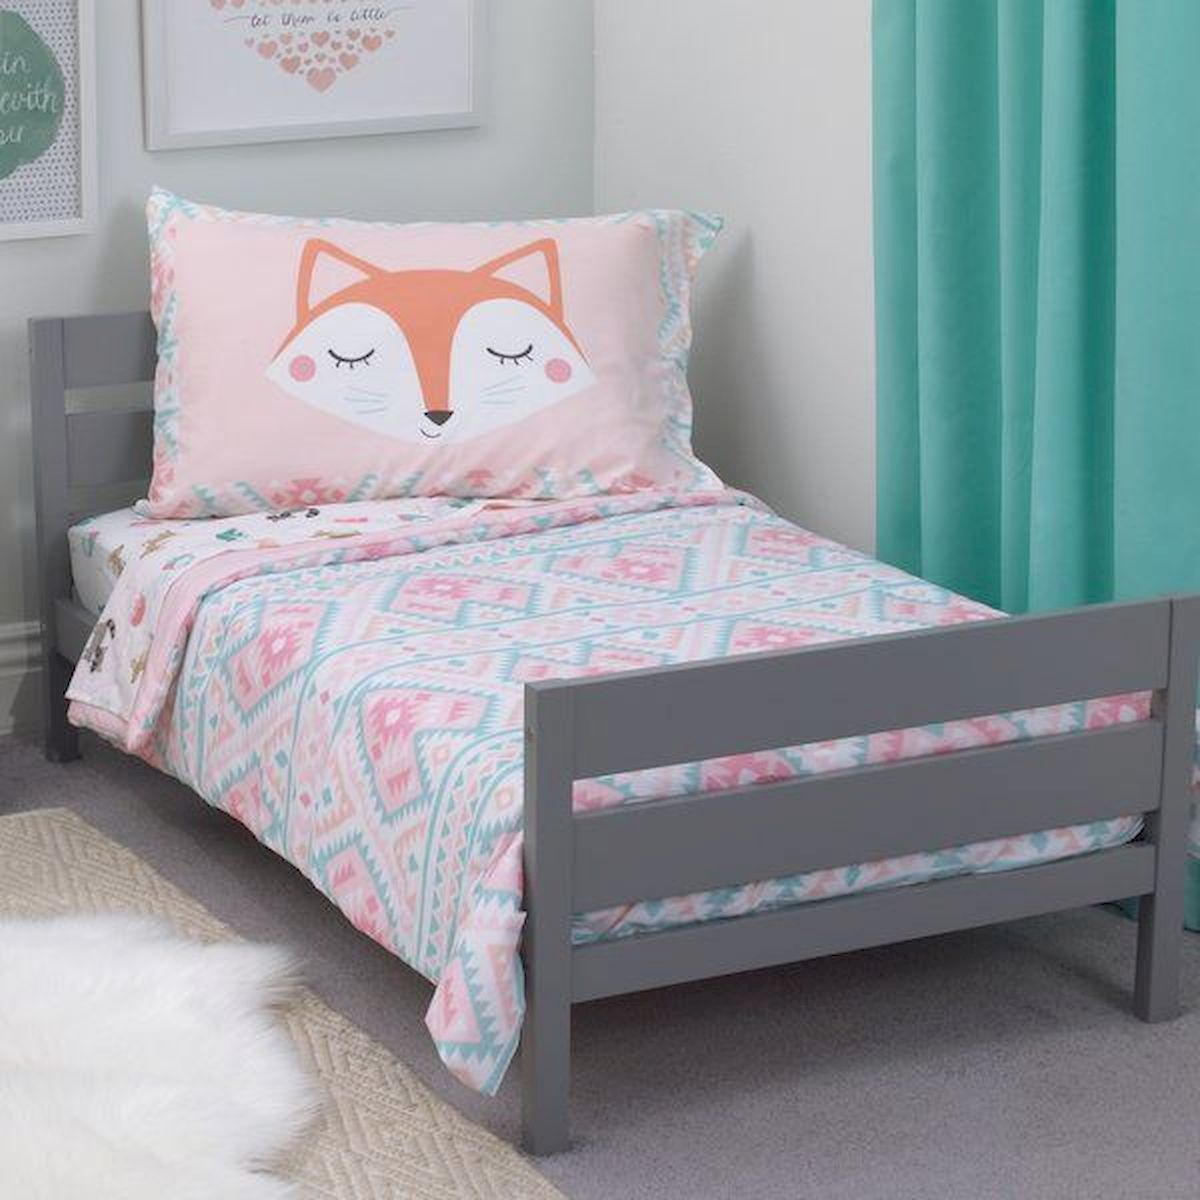 When to Transition to a Toddler Bed | Toddler bed set